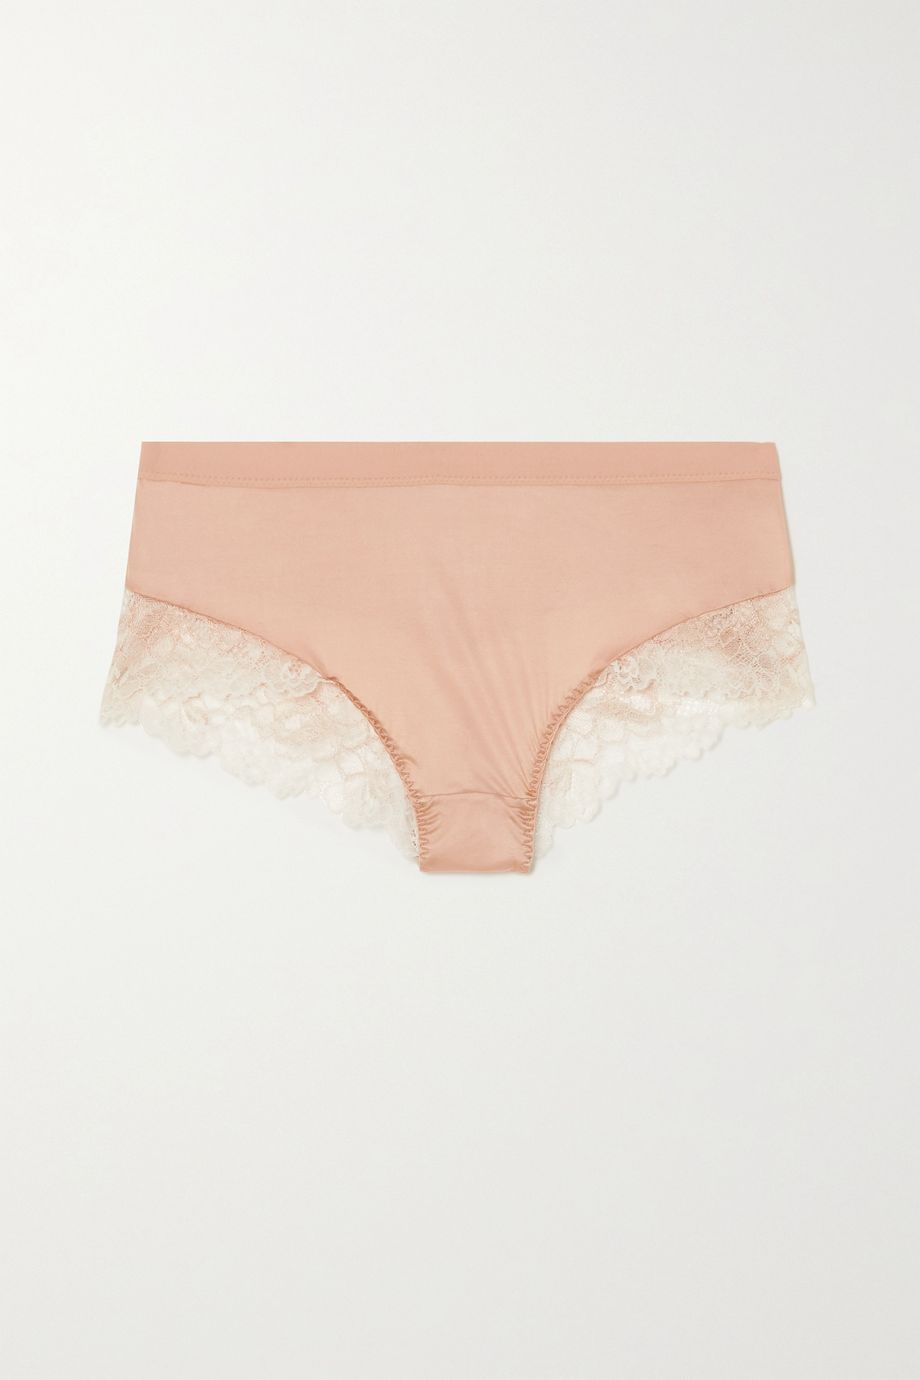 Maison Lejaby Shade satin and stretch-lace briefs